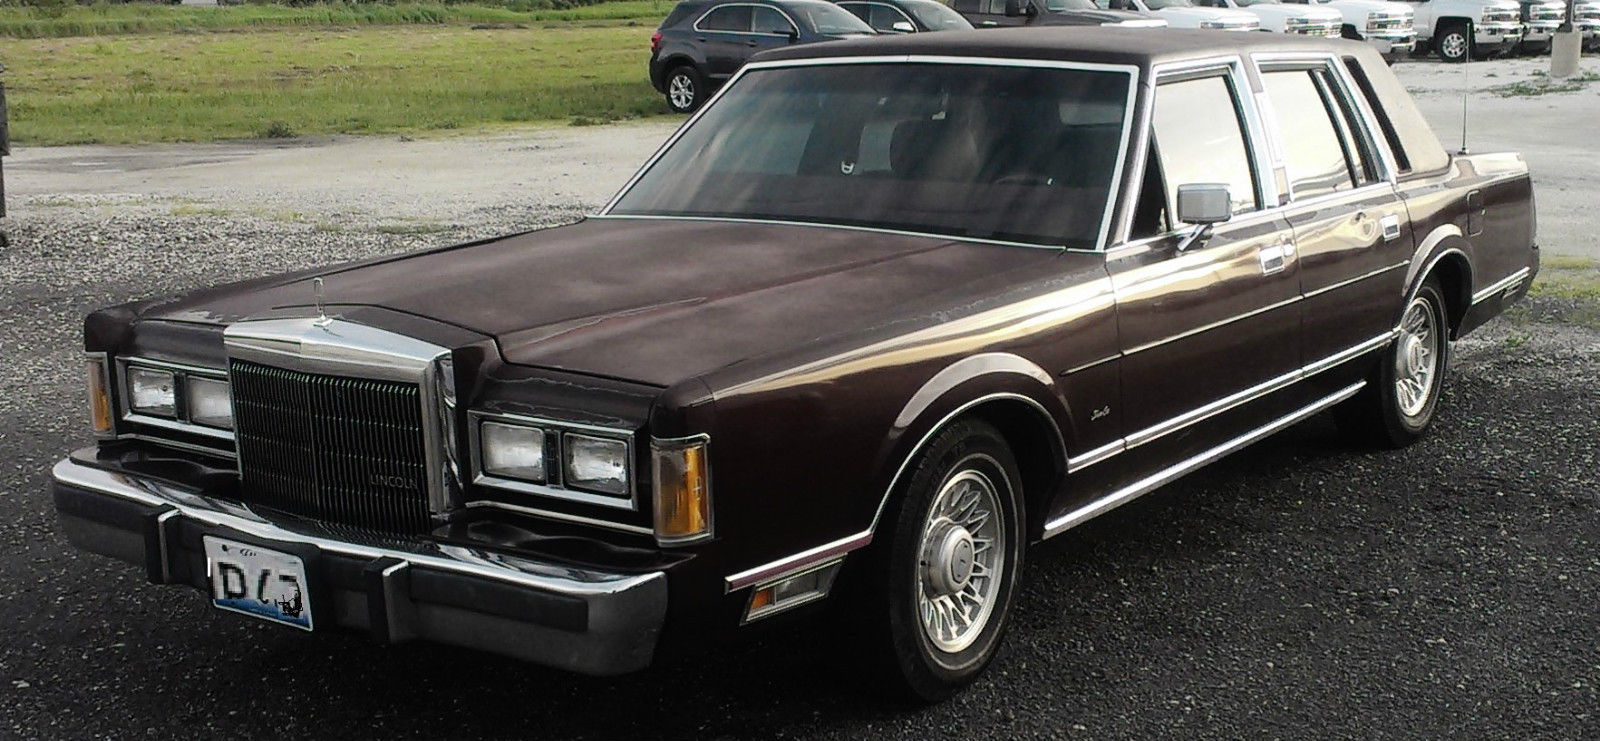 1989 lincoln town car nice burgundy leather runs great looks good classic lincoln town. Black Bedroom Furniture Sets. Home Design Ideas